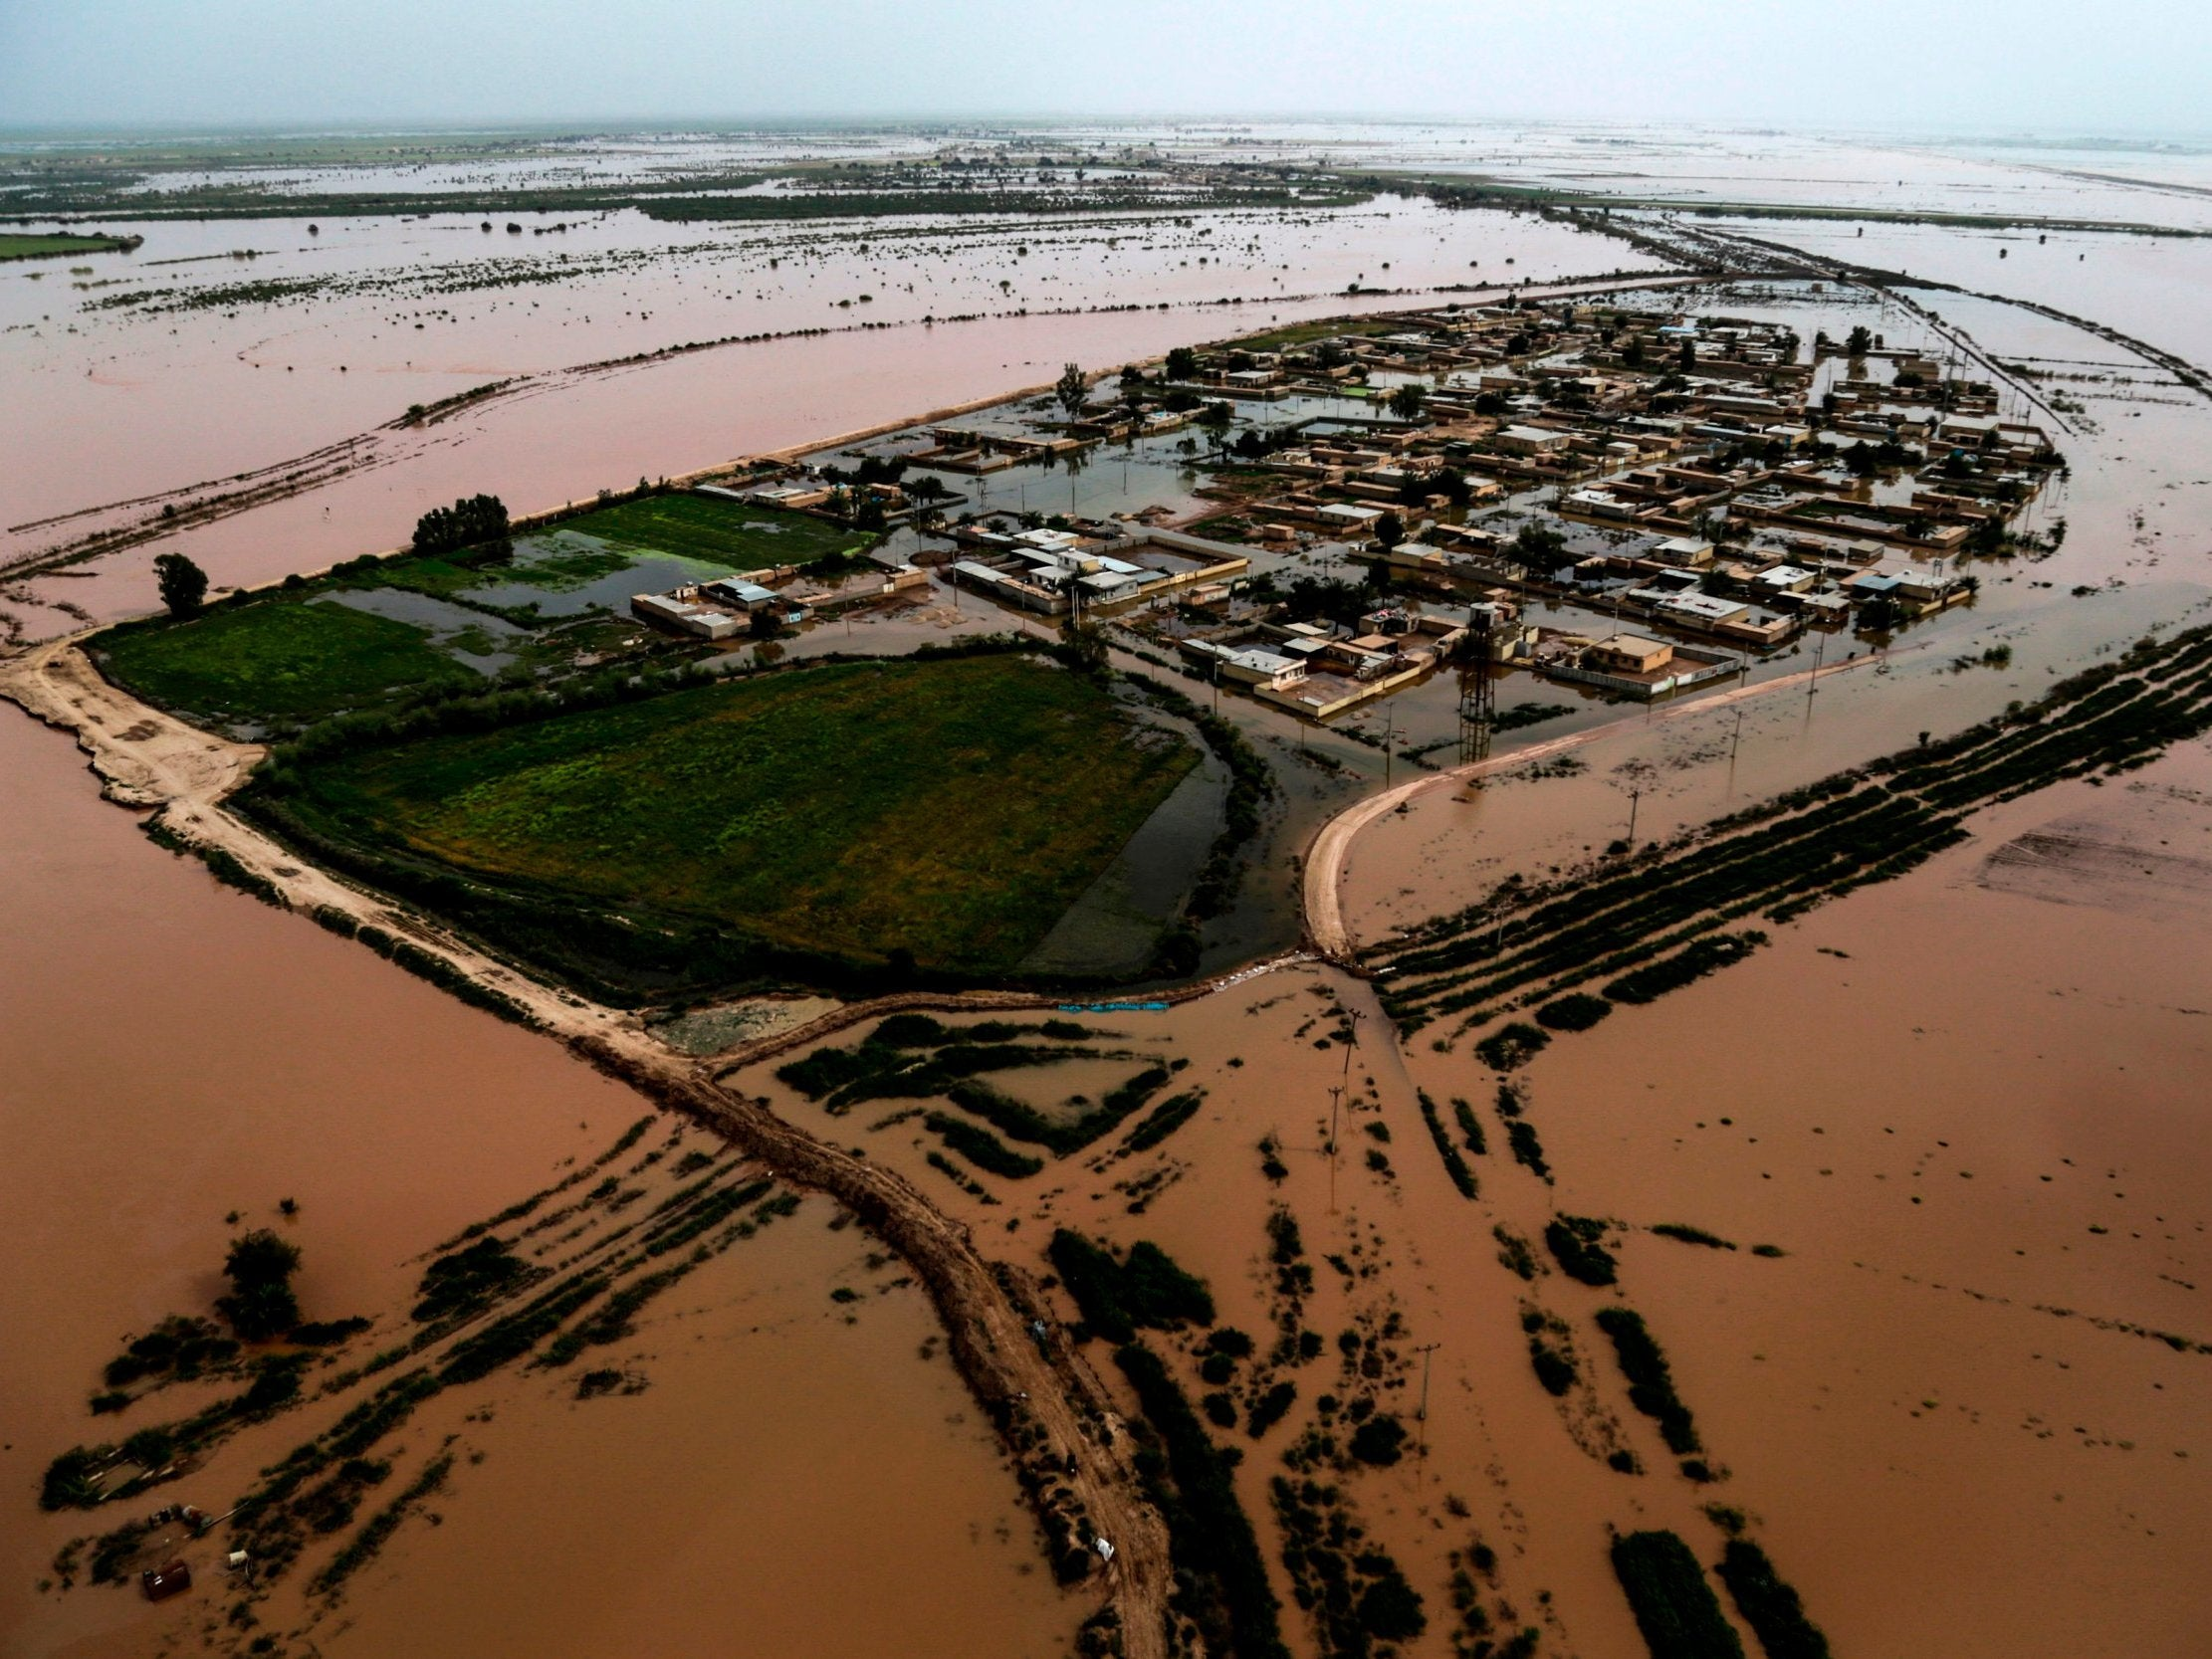 'Inhuman' Trump sanctions preventing aid money getting to victims of deadly floods in Iran, campaigners say